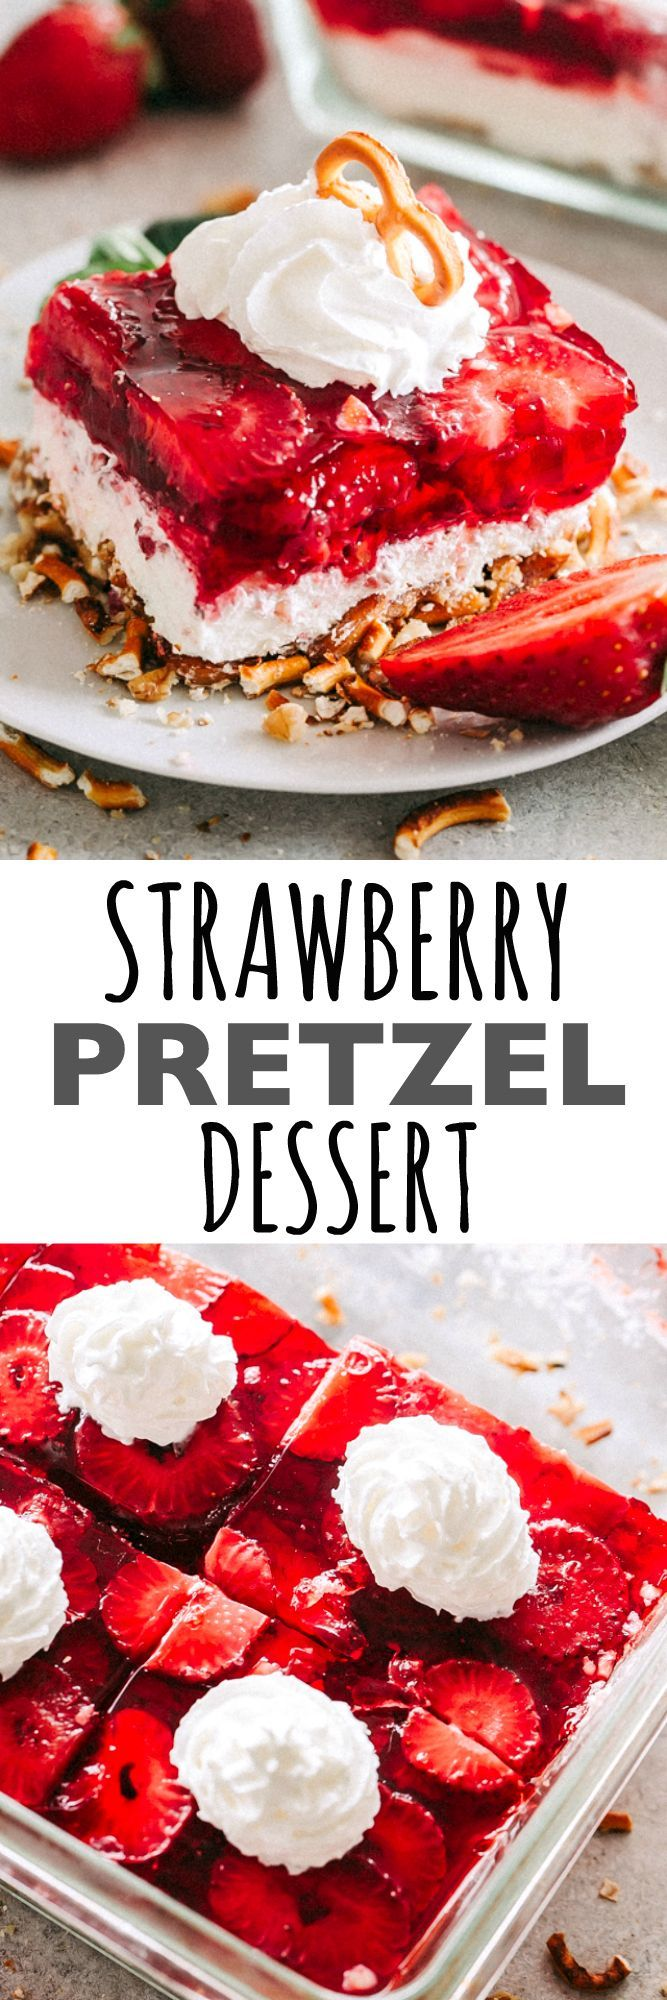 Strawberry Pretzel Dessert Recipe - Crunchy pretzel crust topped with a layer of sweet cream cheese with nuts and a delicious strawberry jello topping. The amazing combination of sweet, salty, creamy, and crunchy make thisdesserta winner with any crowd.